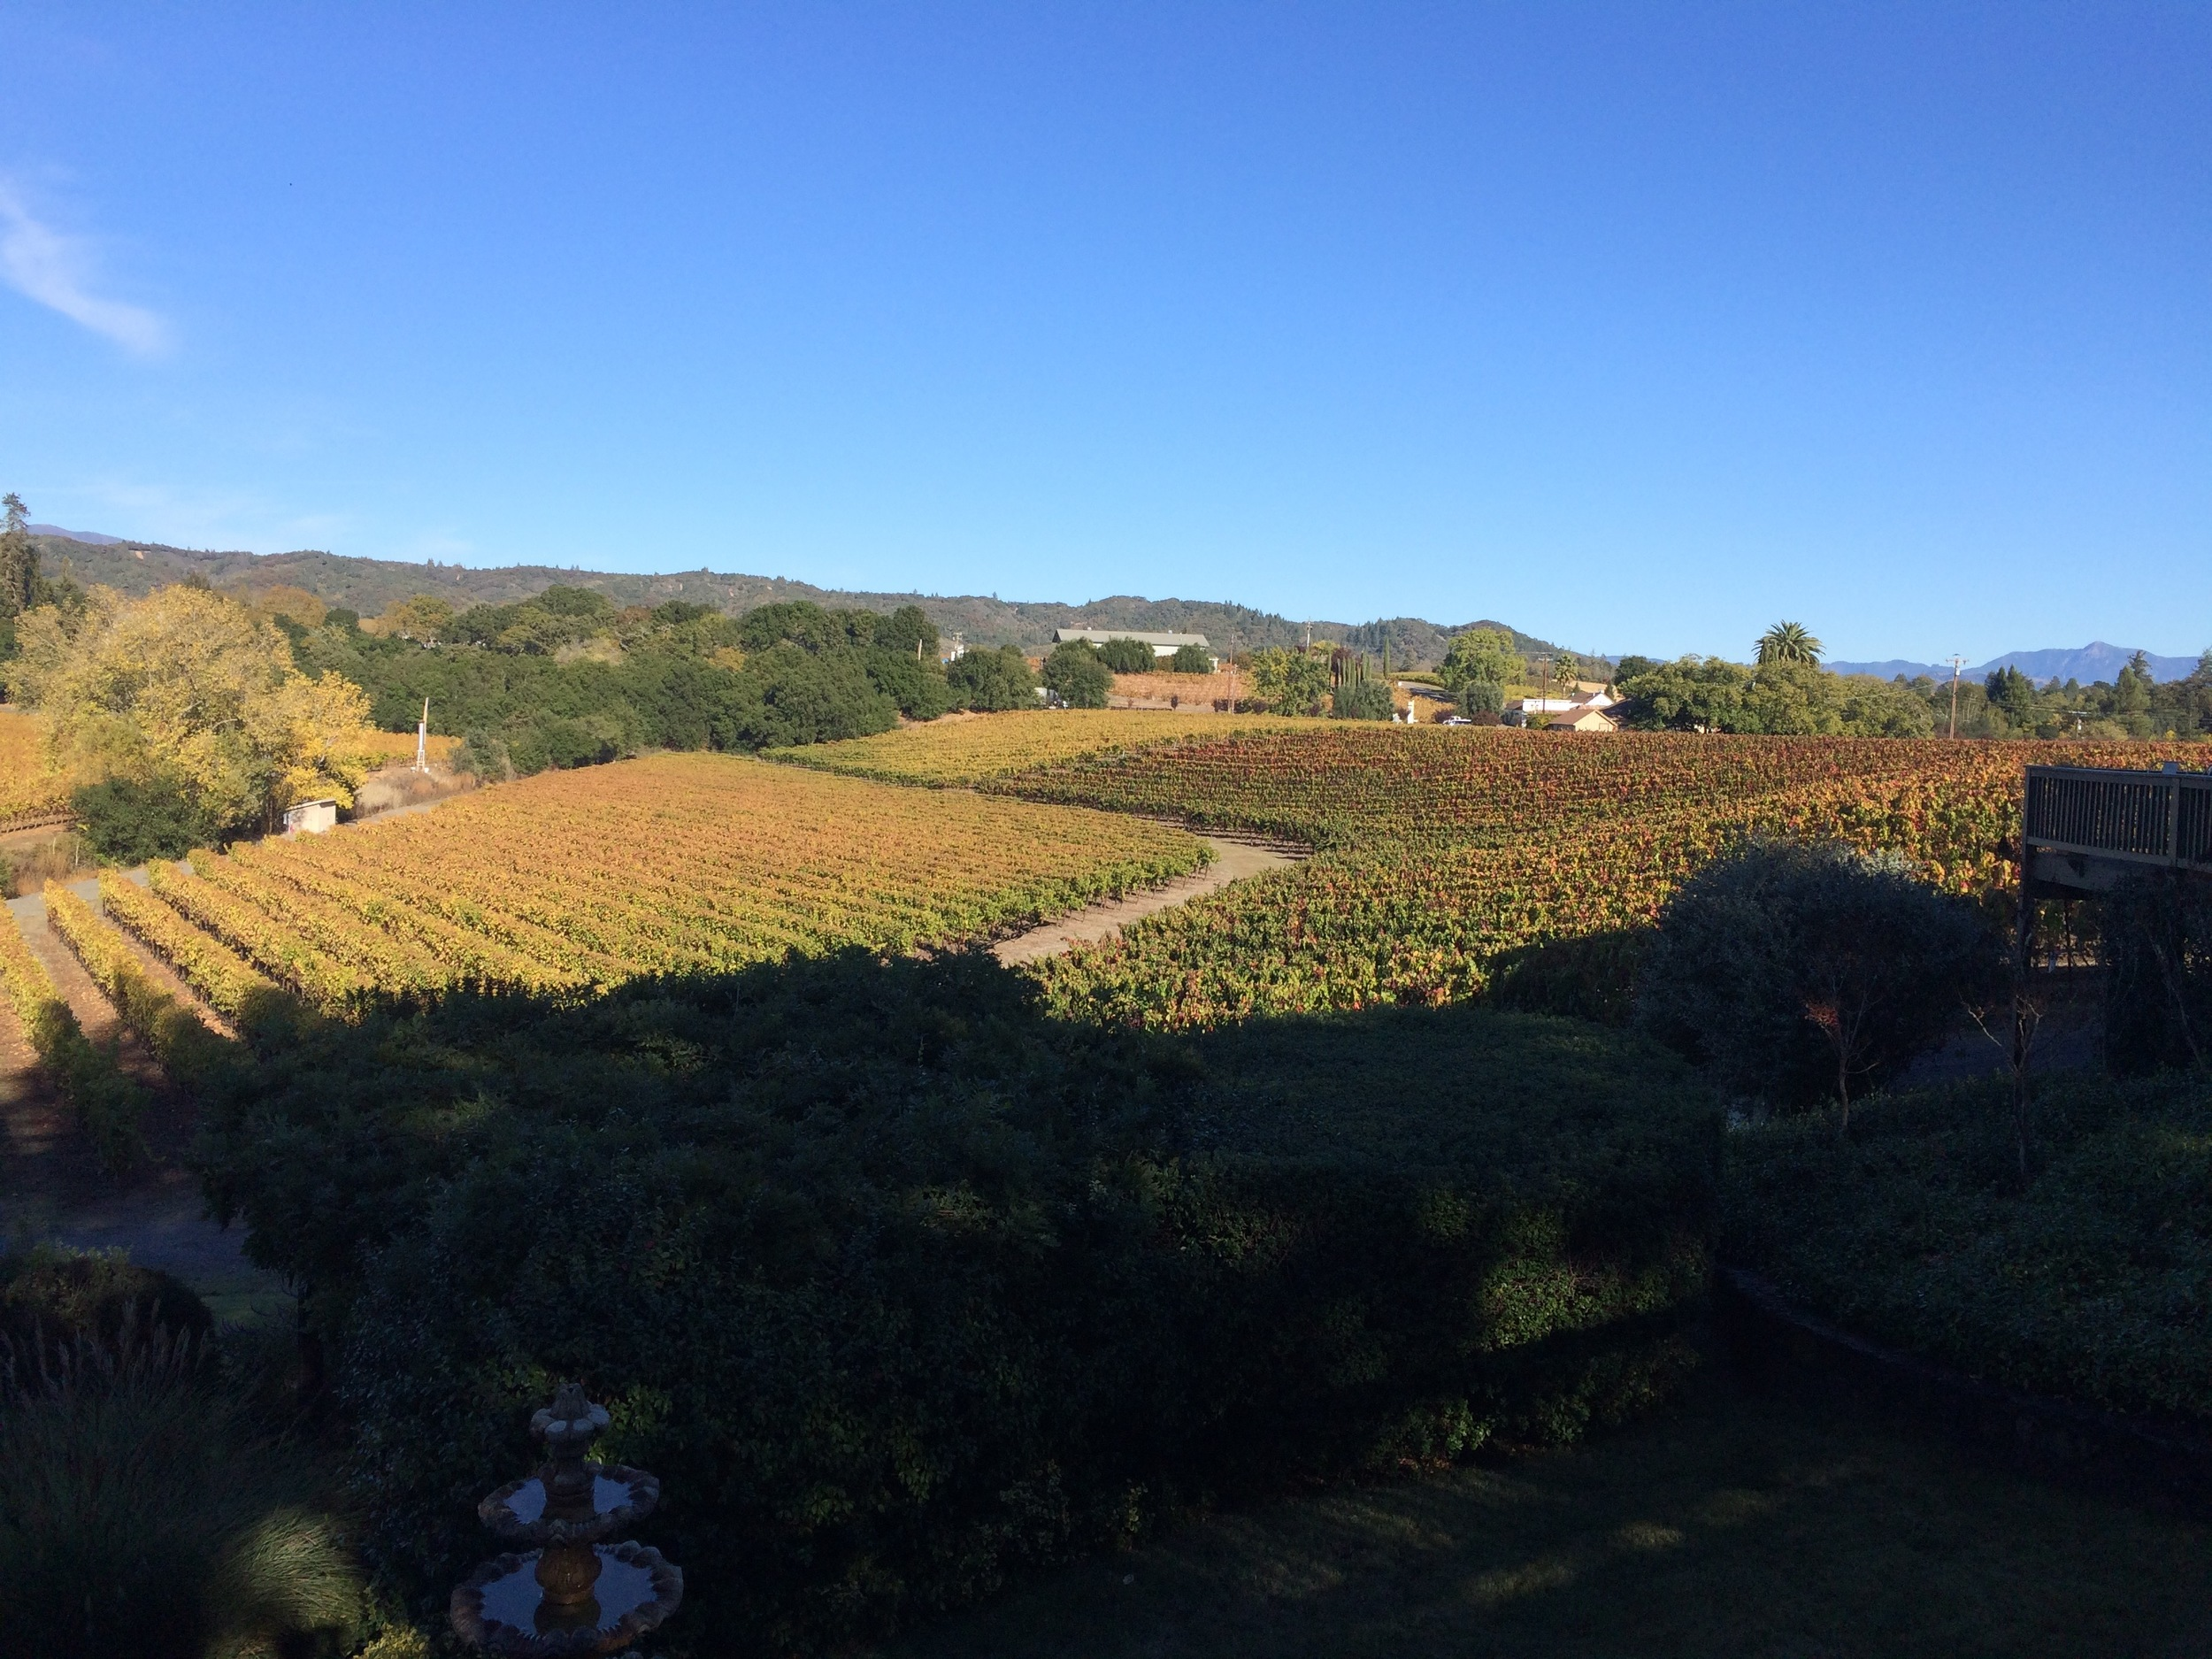 One of the view we enjoyed while tasting some delicious wine.